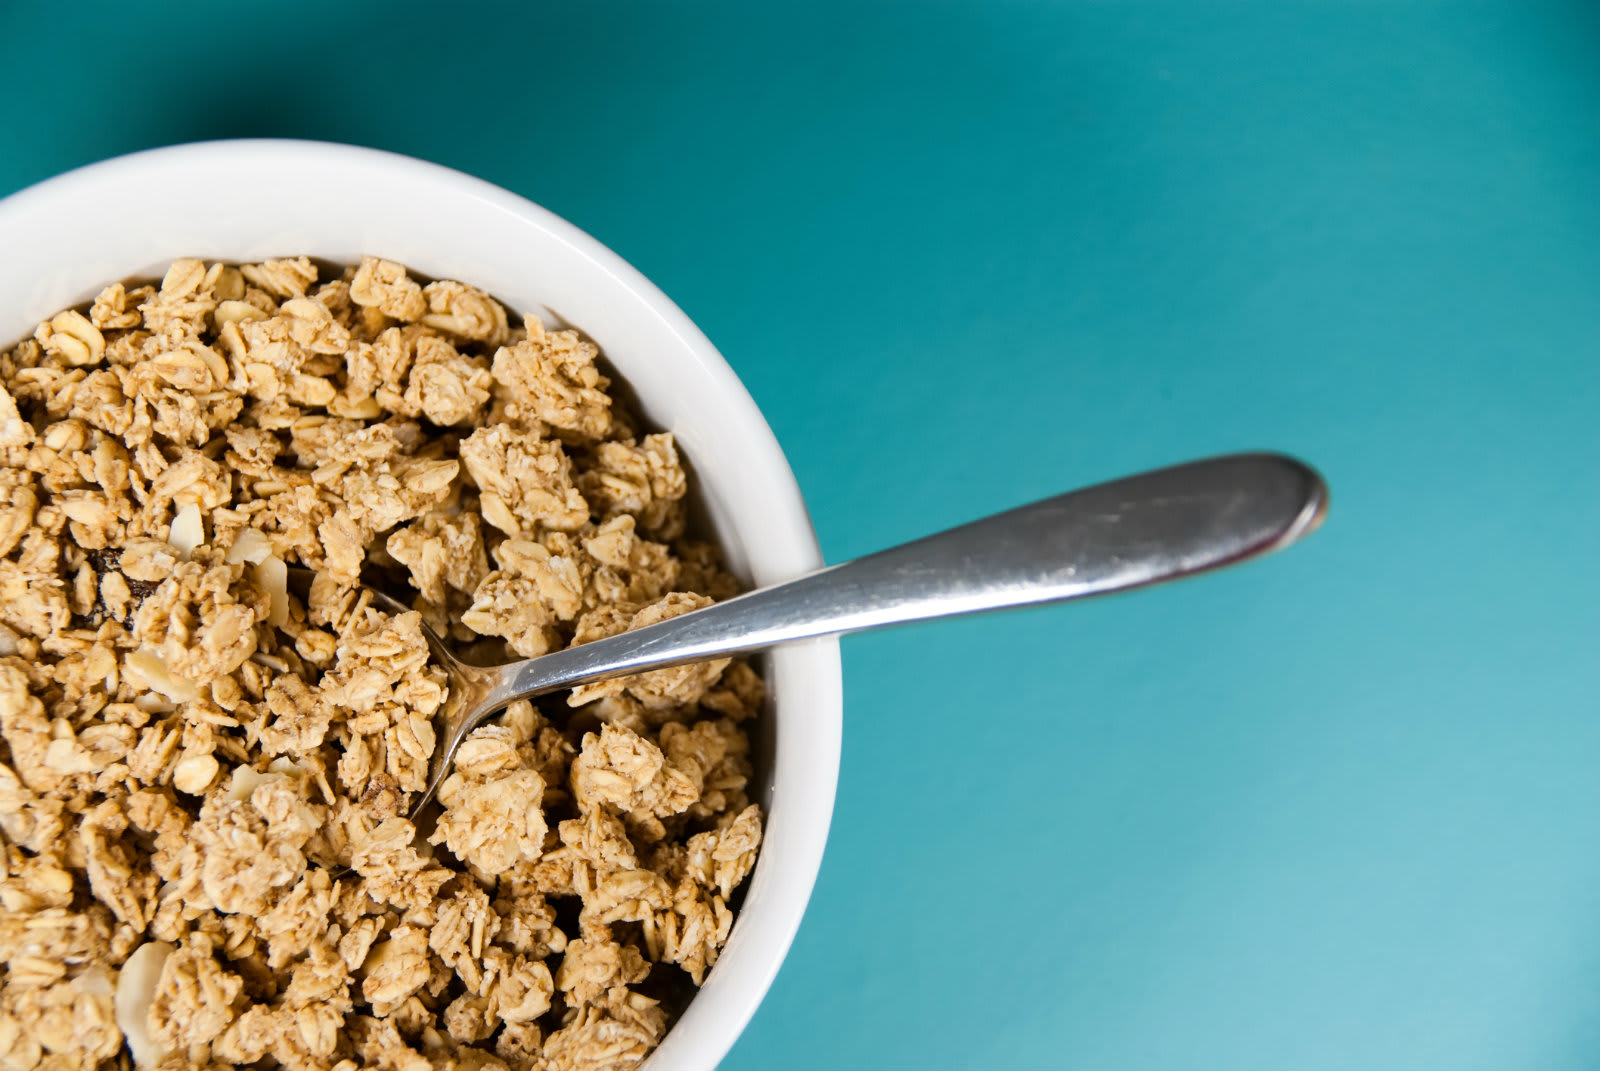 Family Accidentally Buys, Eats 21-Year-Old Cereal from Walmart